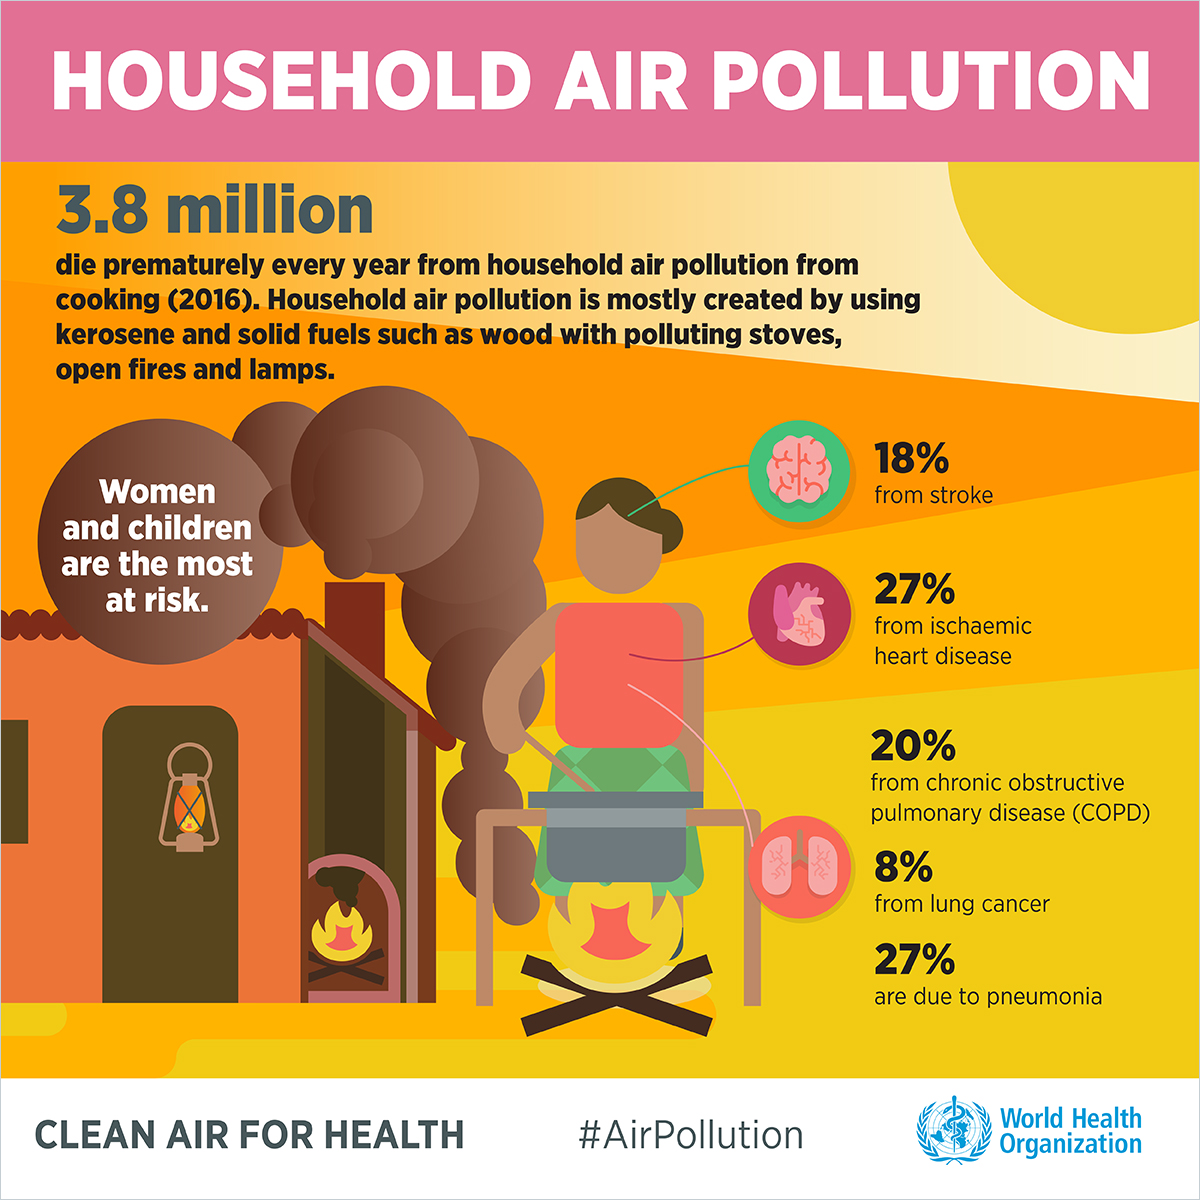 Household Air Pollution 3.8 million die prematurely every year from household air pollution from cooking